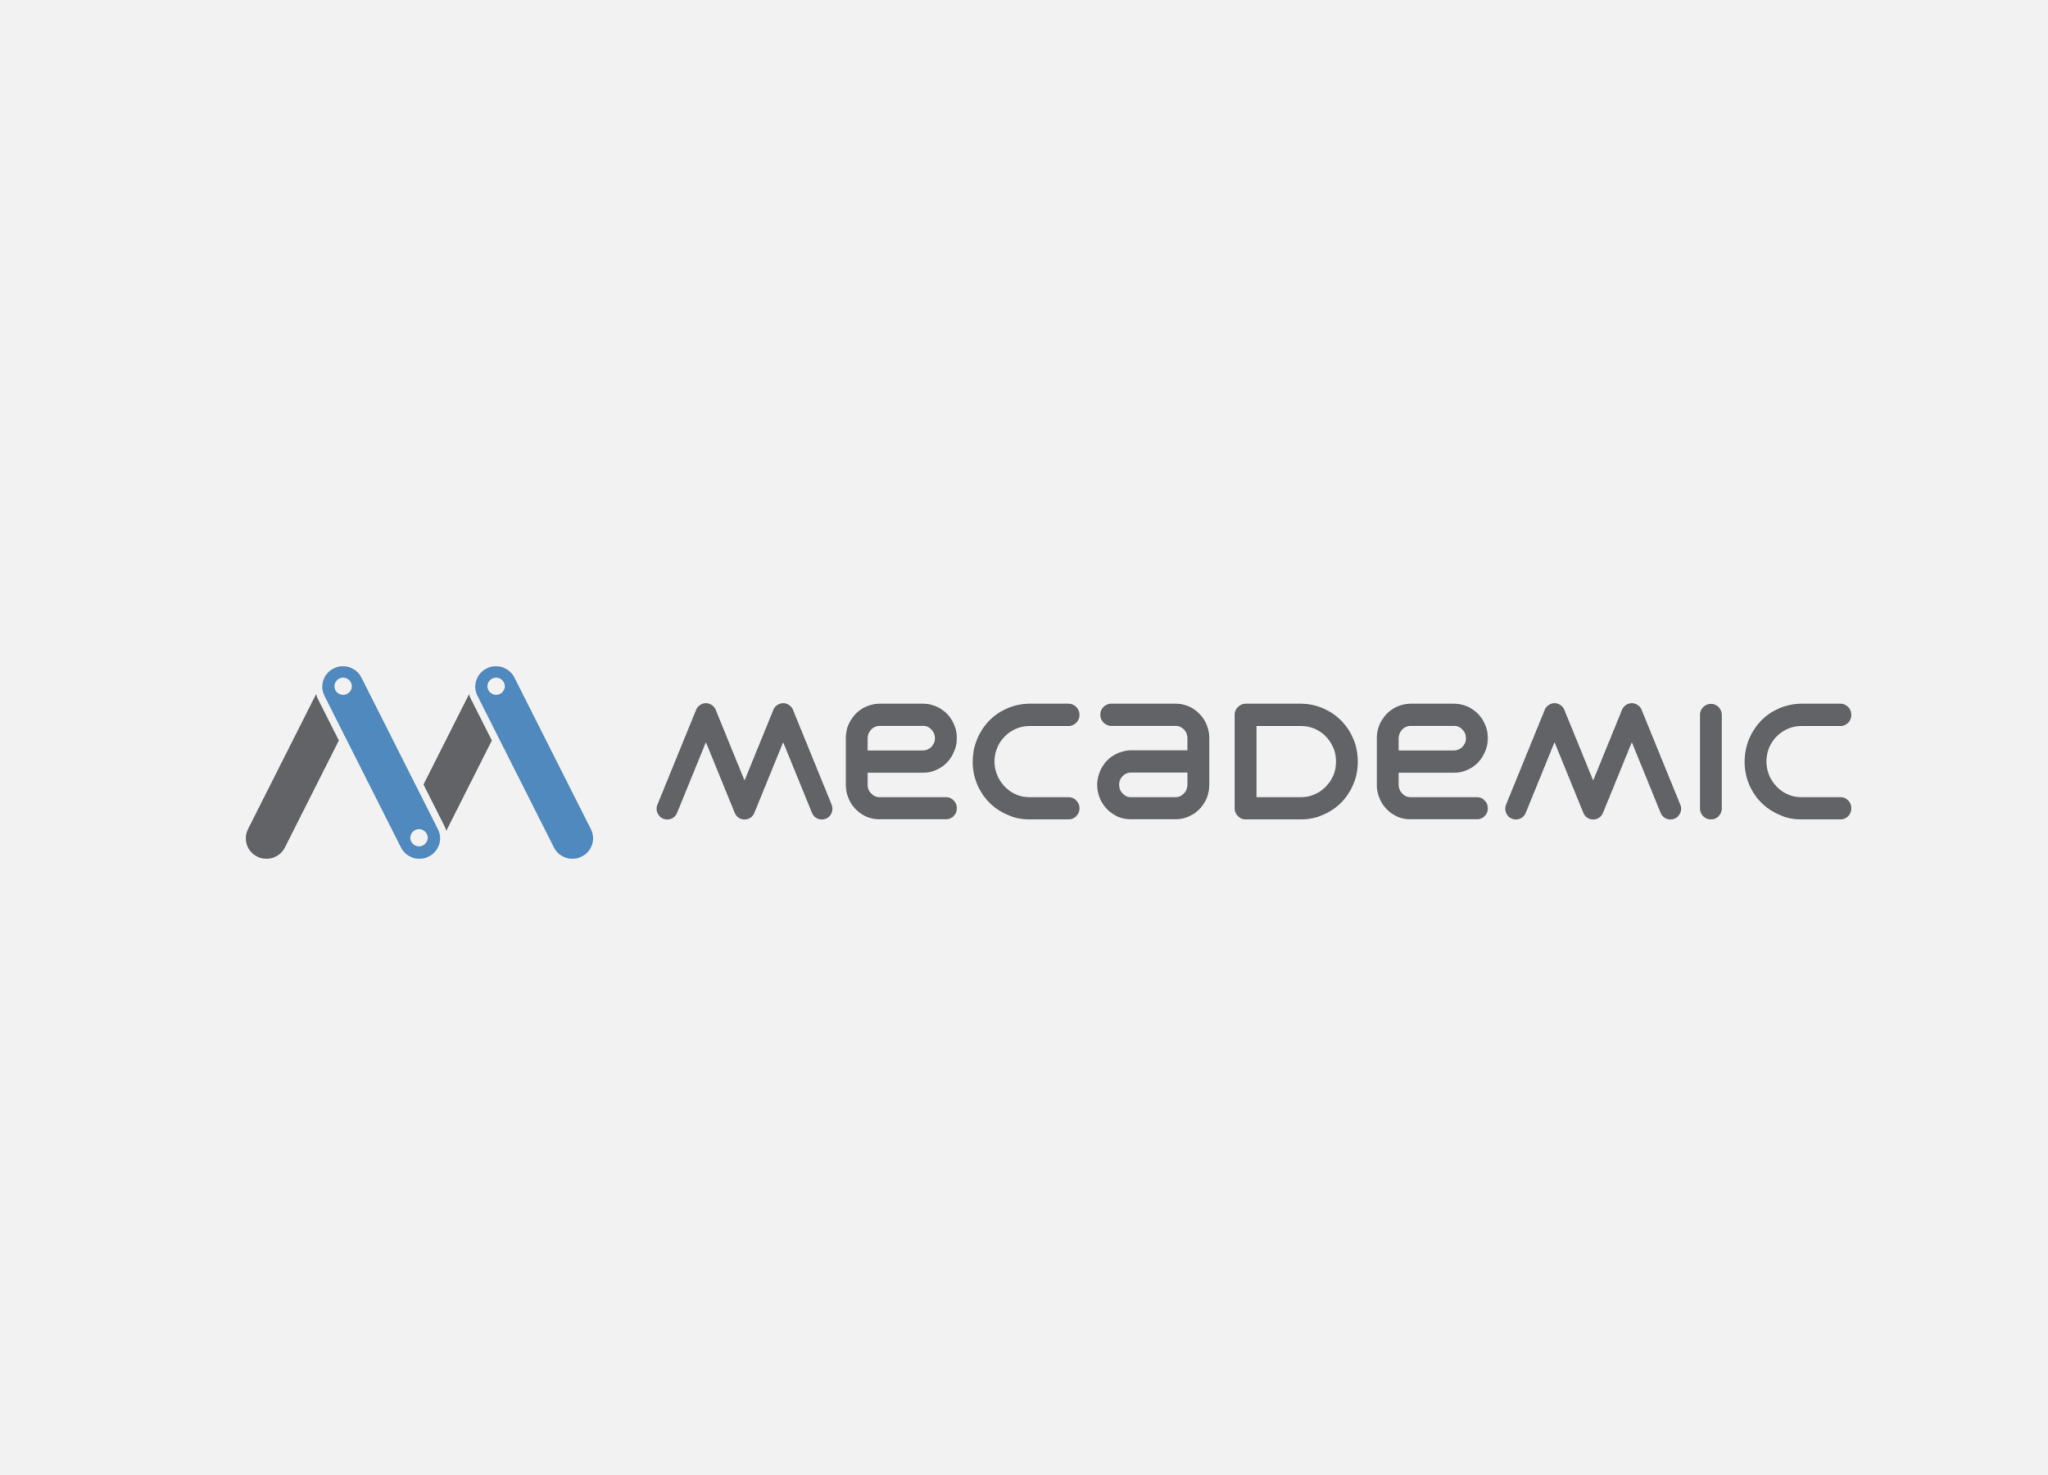 Mecademic Logo Lockup Horizontal